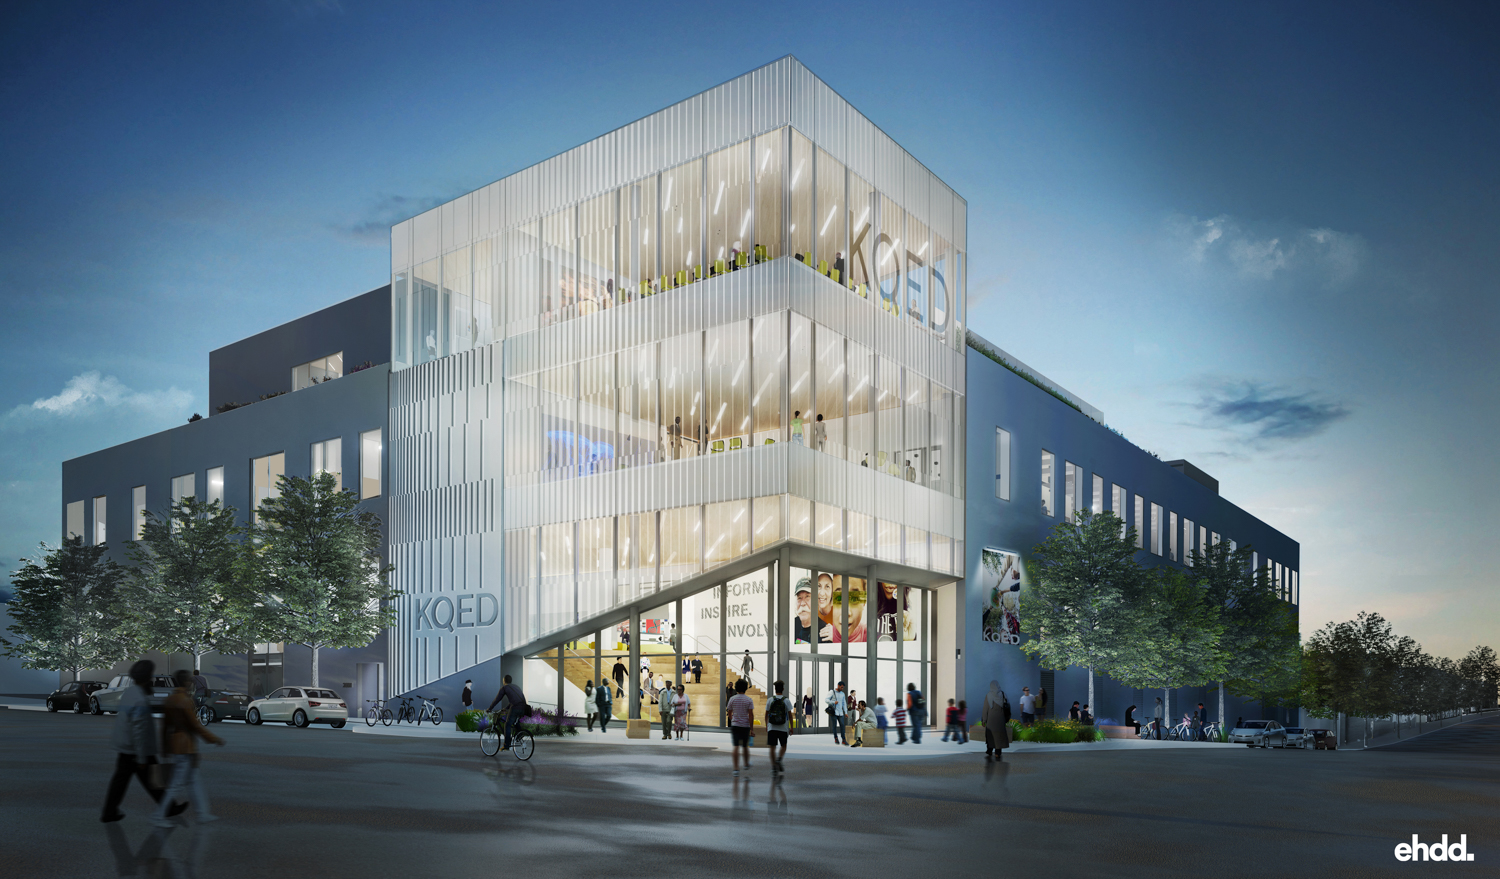 Exterior view of the KQED headquarters at Mariposa and Bryant Streets in San Francisco. Community, transparency, collaboration and innovation are at the heart of EHDD's design. Rendering courtesy of EHDD Architects